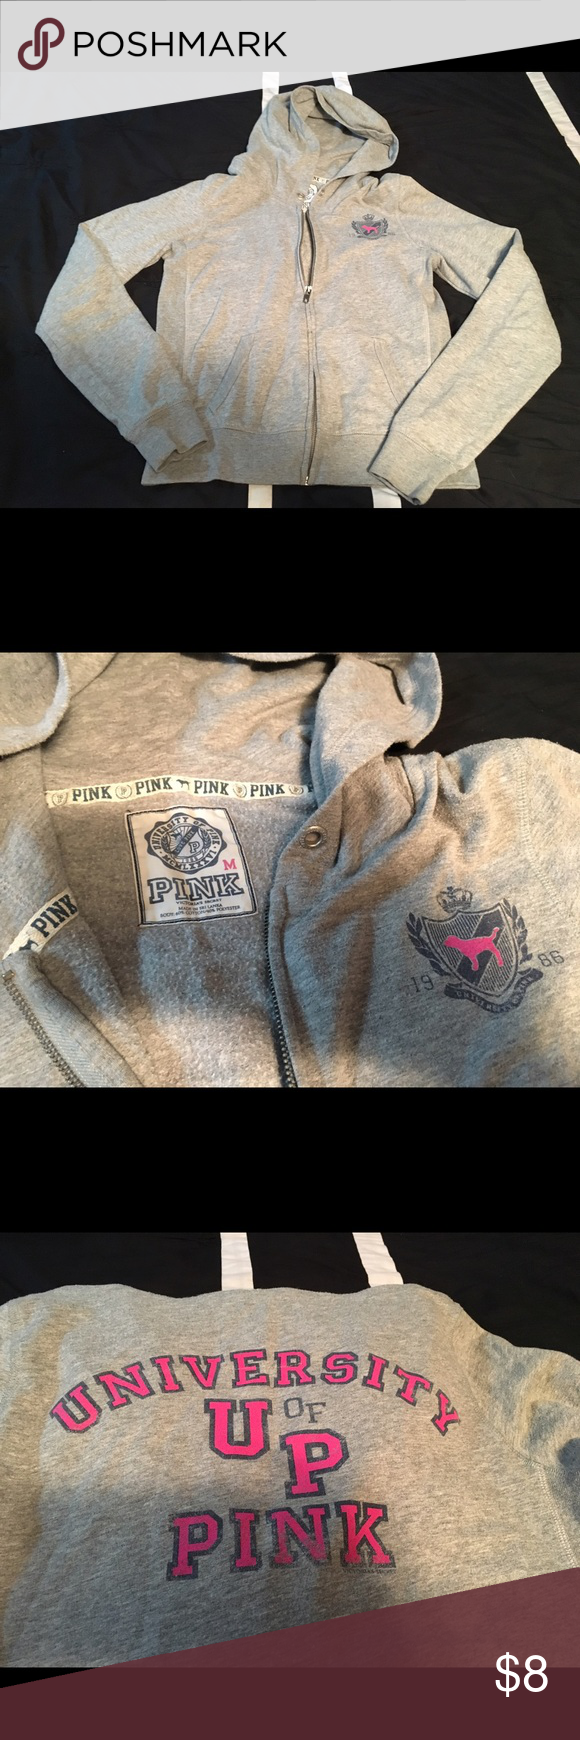 Victoria's Secret PINK Gray University Full Zip Preowned for many years, shows signs of wear: fading/cracking of letters, piling and a small bleach stain (pic 4) on the arm. Please note that the hoodie string is gone also. Fits true to size, zipper is still fully functional & no holes PINK Victoria's Secret Tops Sweatshirts & Hoodies